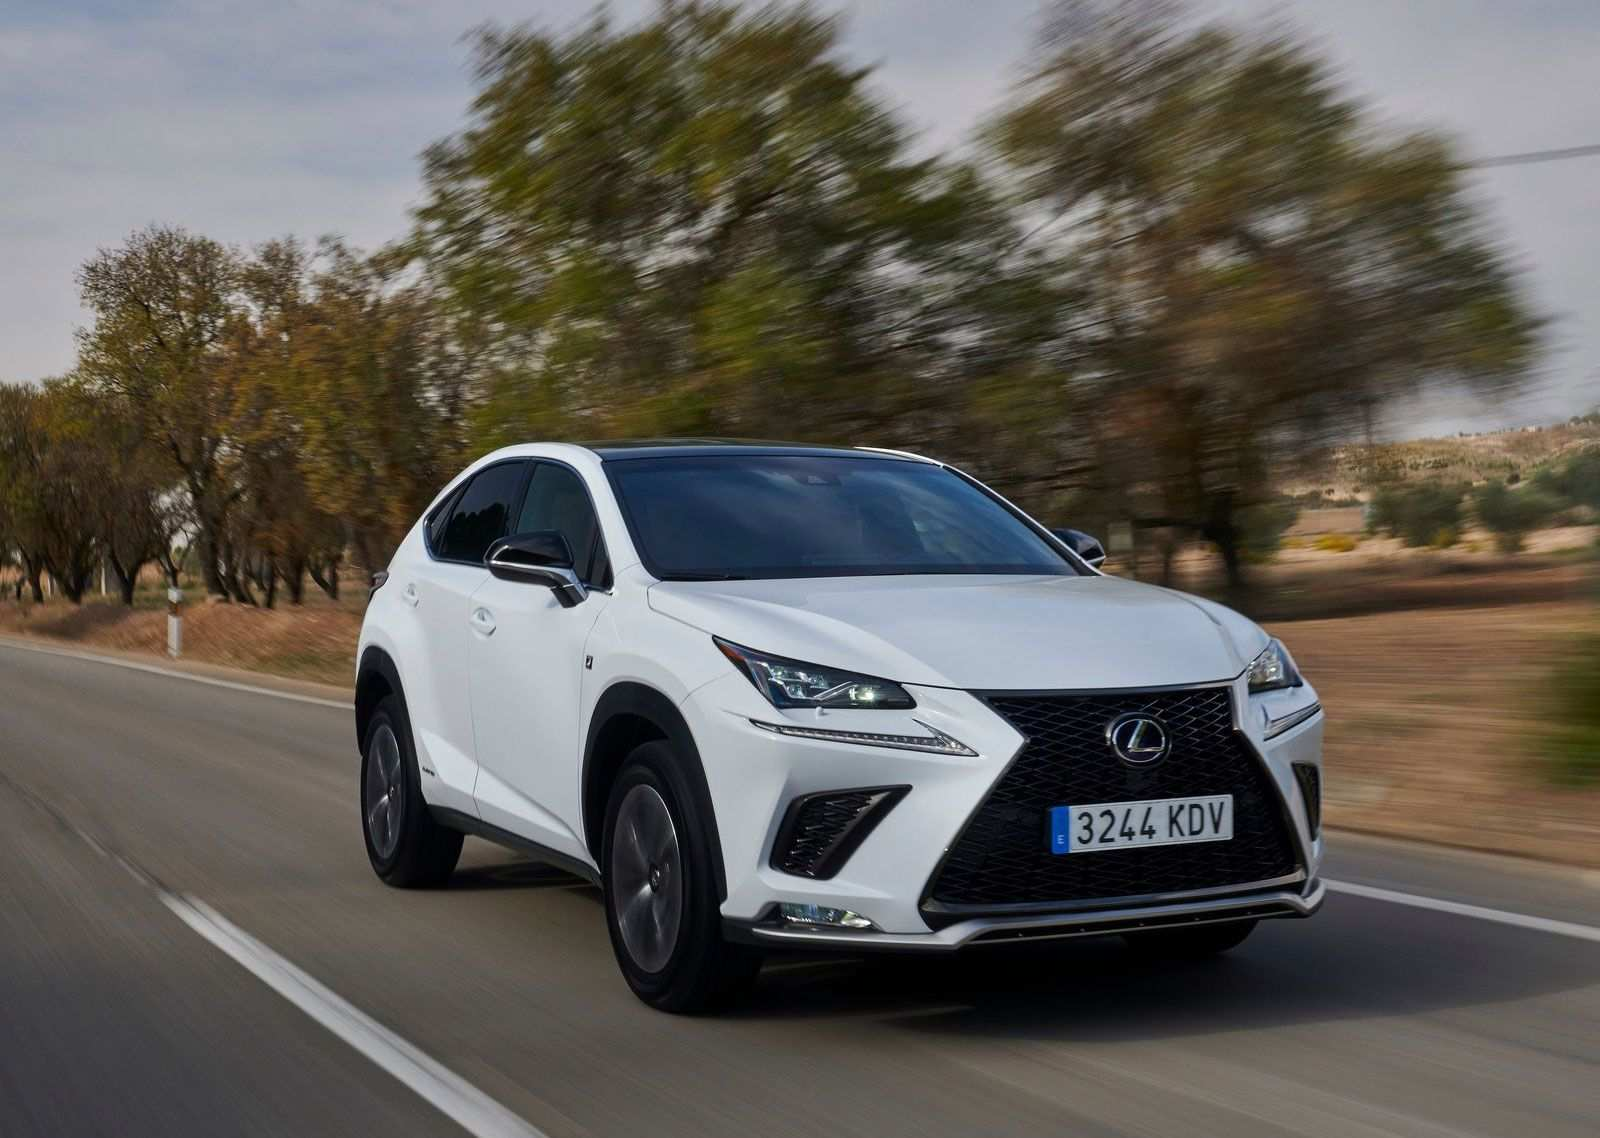 93 All New Jeepeta Lexus 2020 Review with Jeepeta Lexus 2020